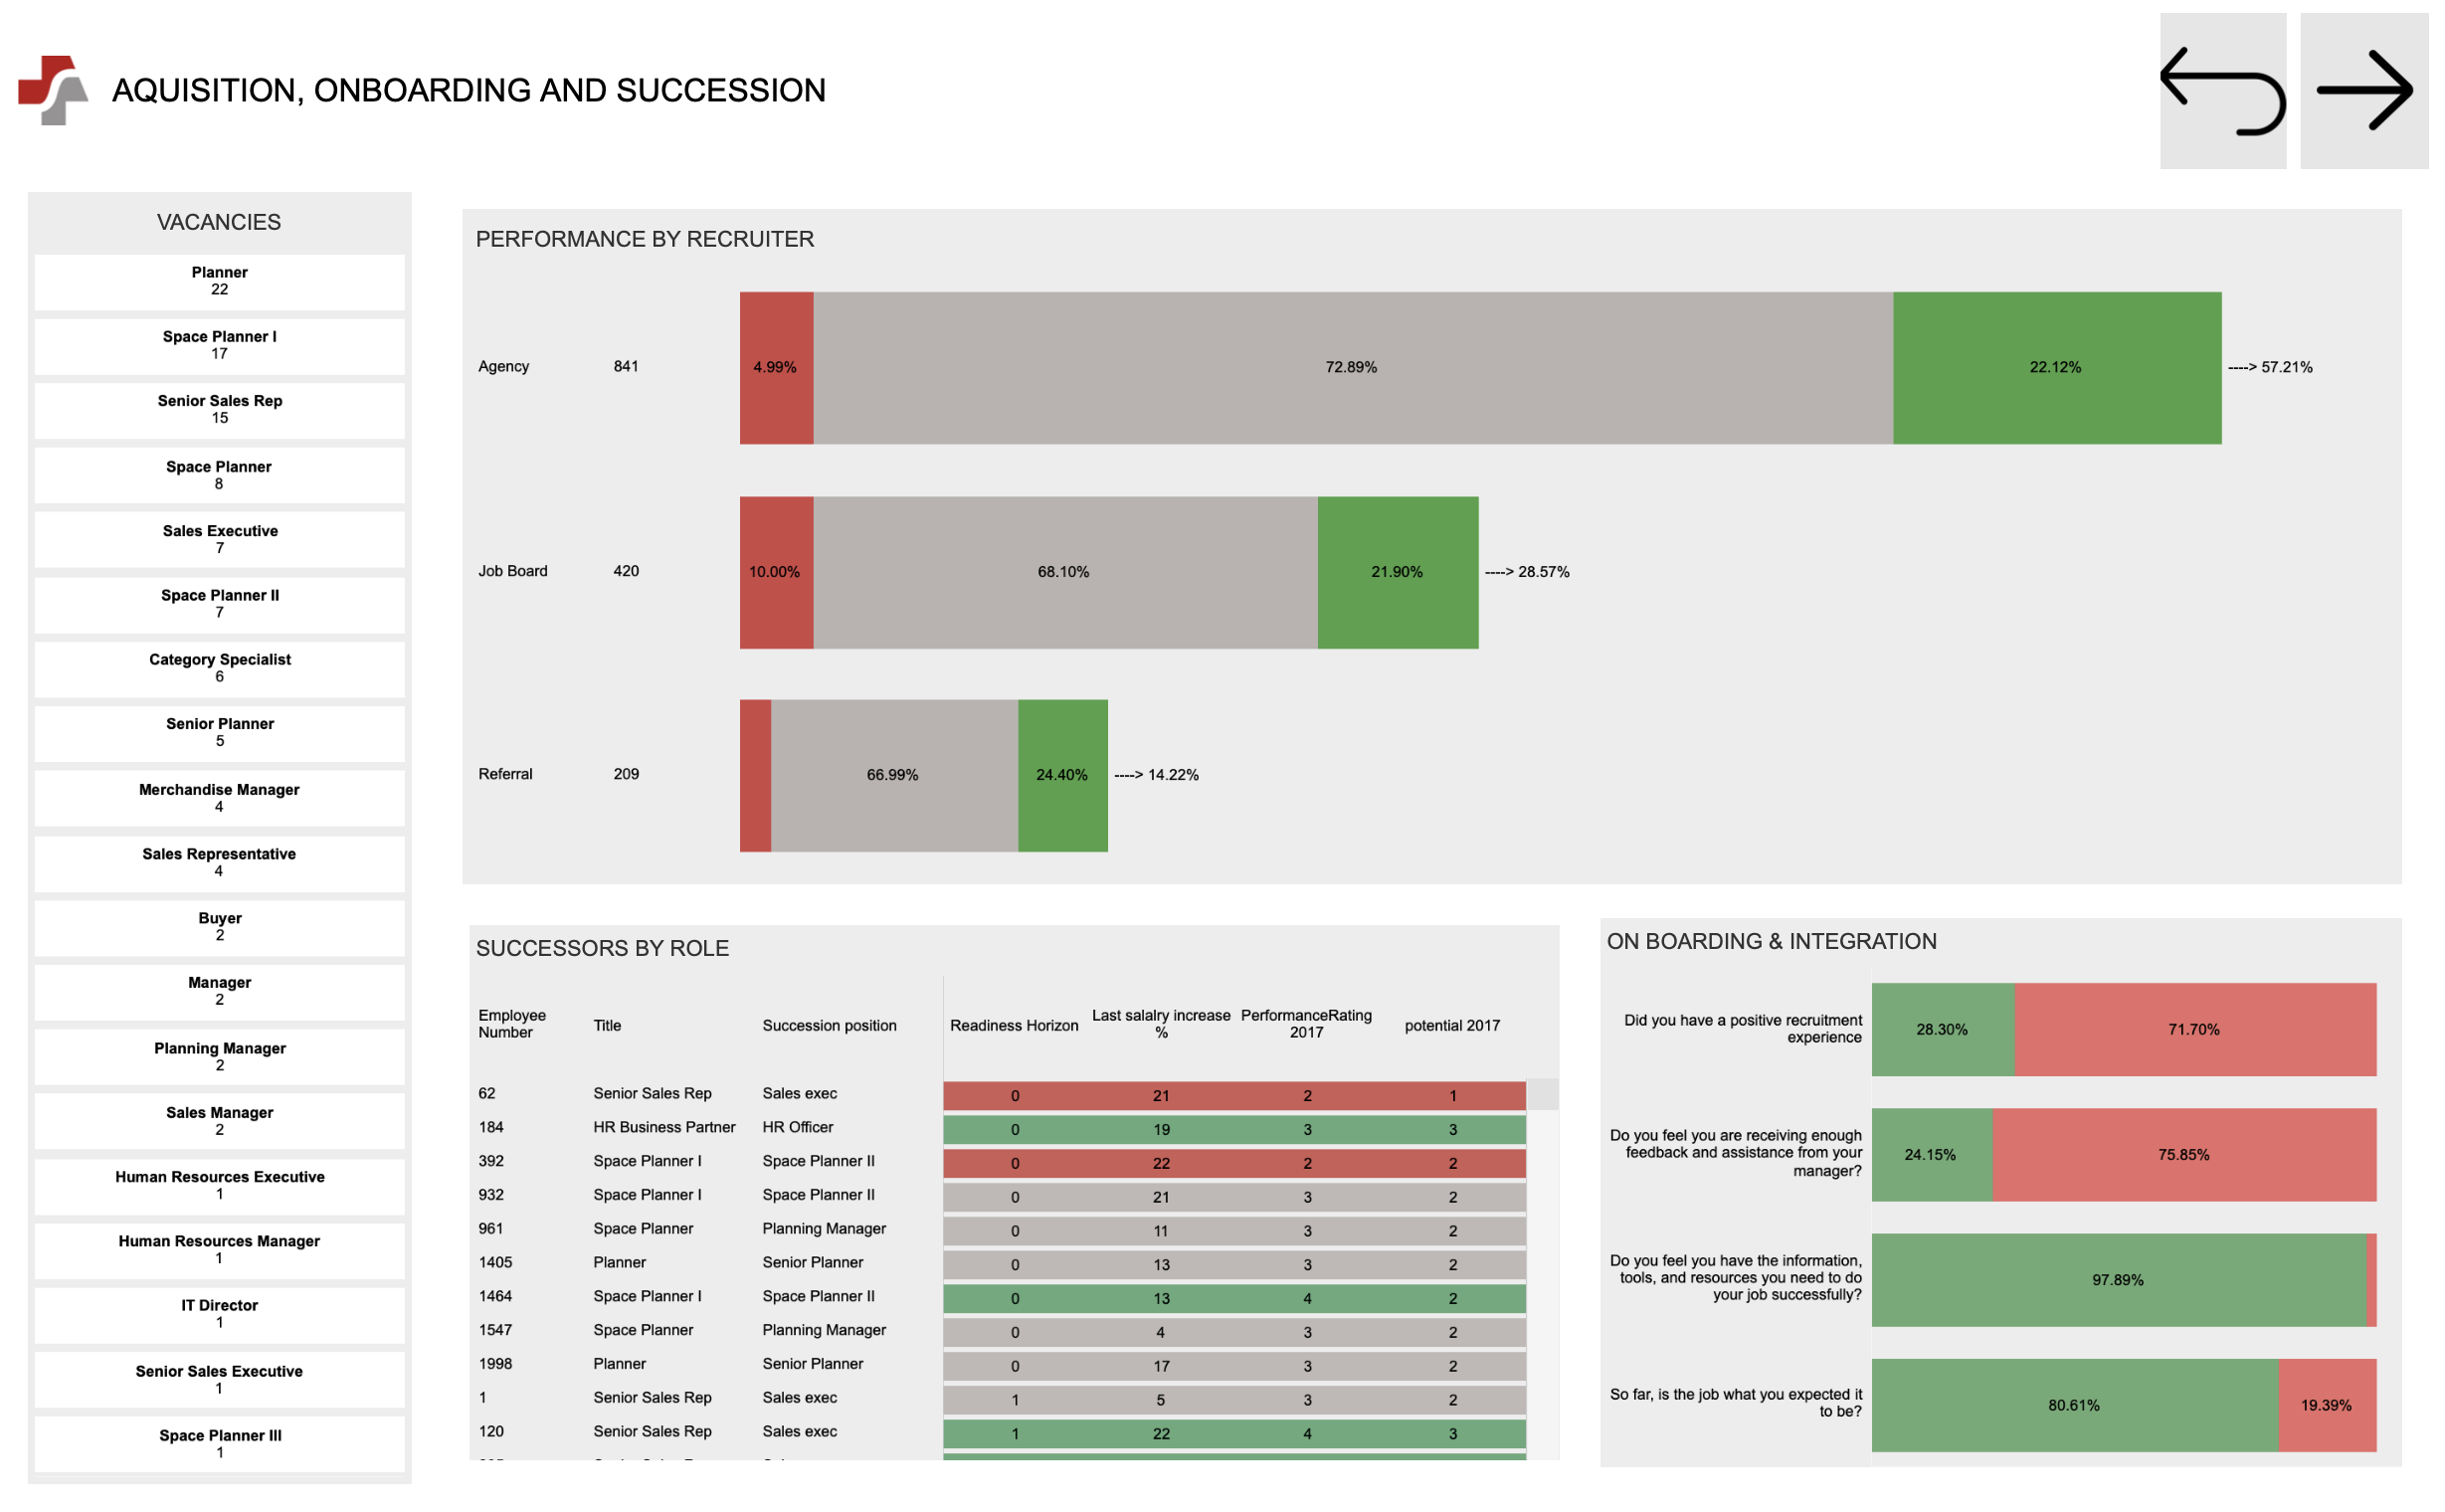 Acquisition Onboarding and succession dashboard